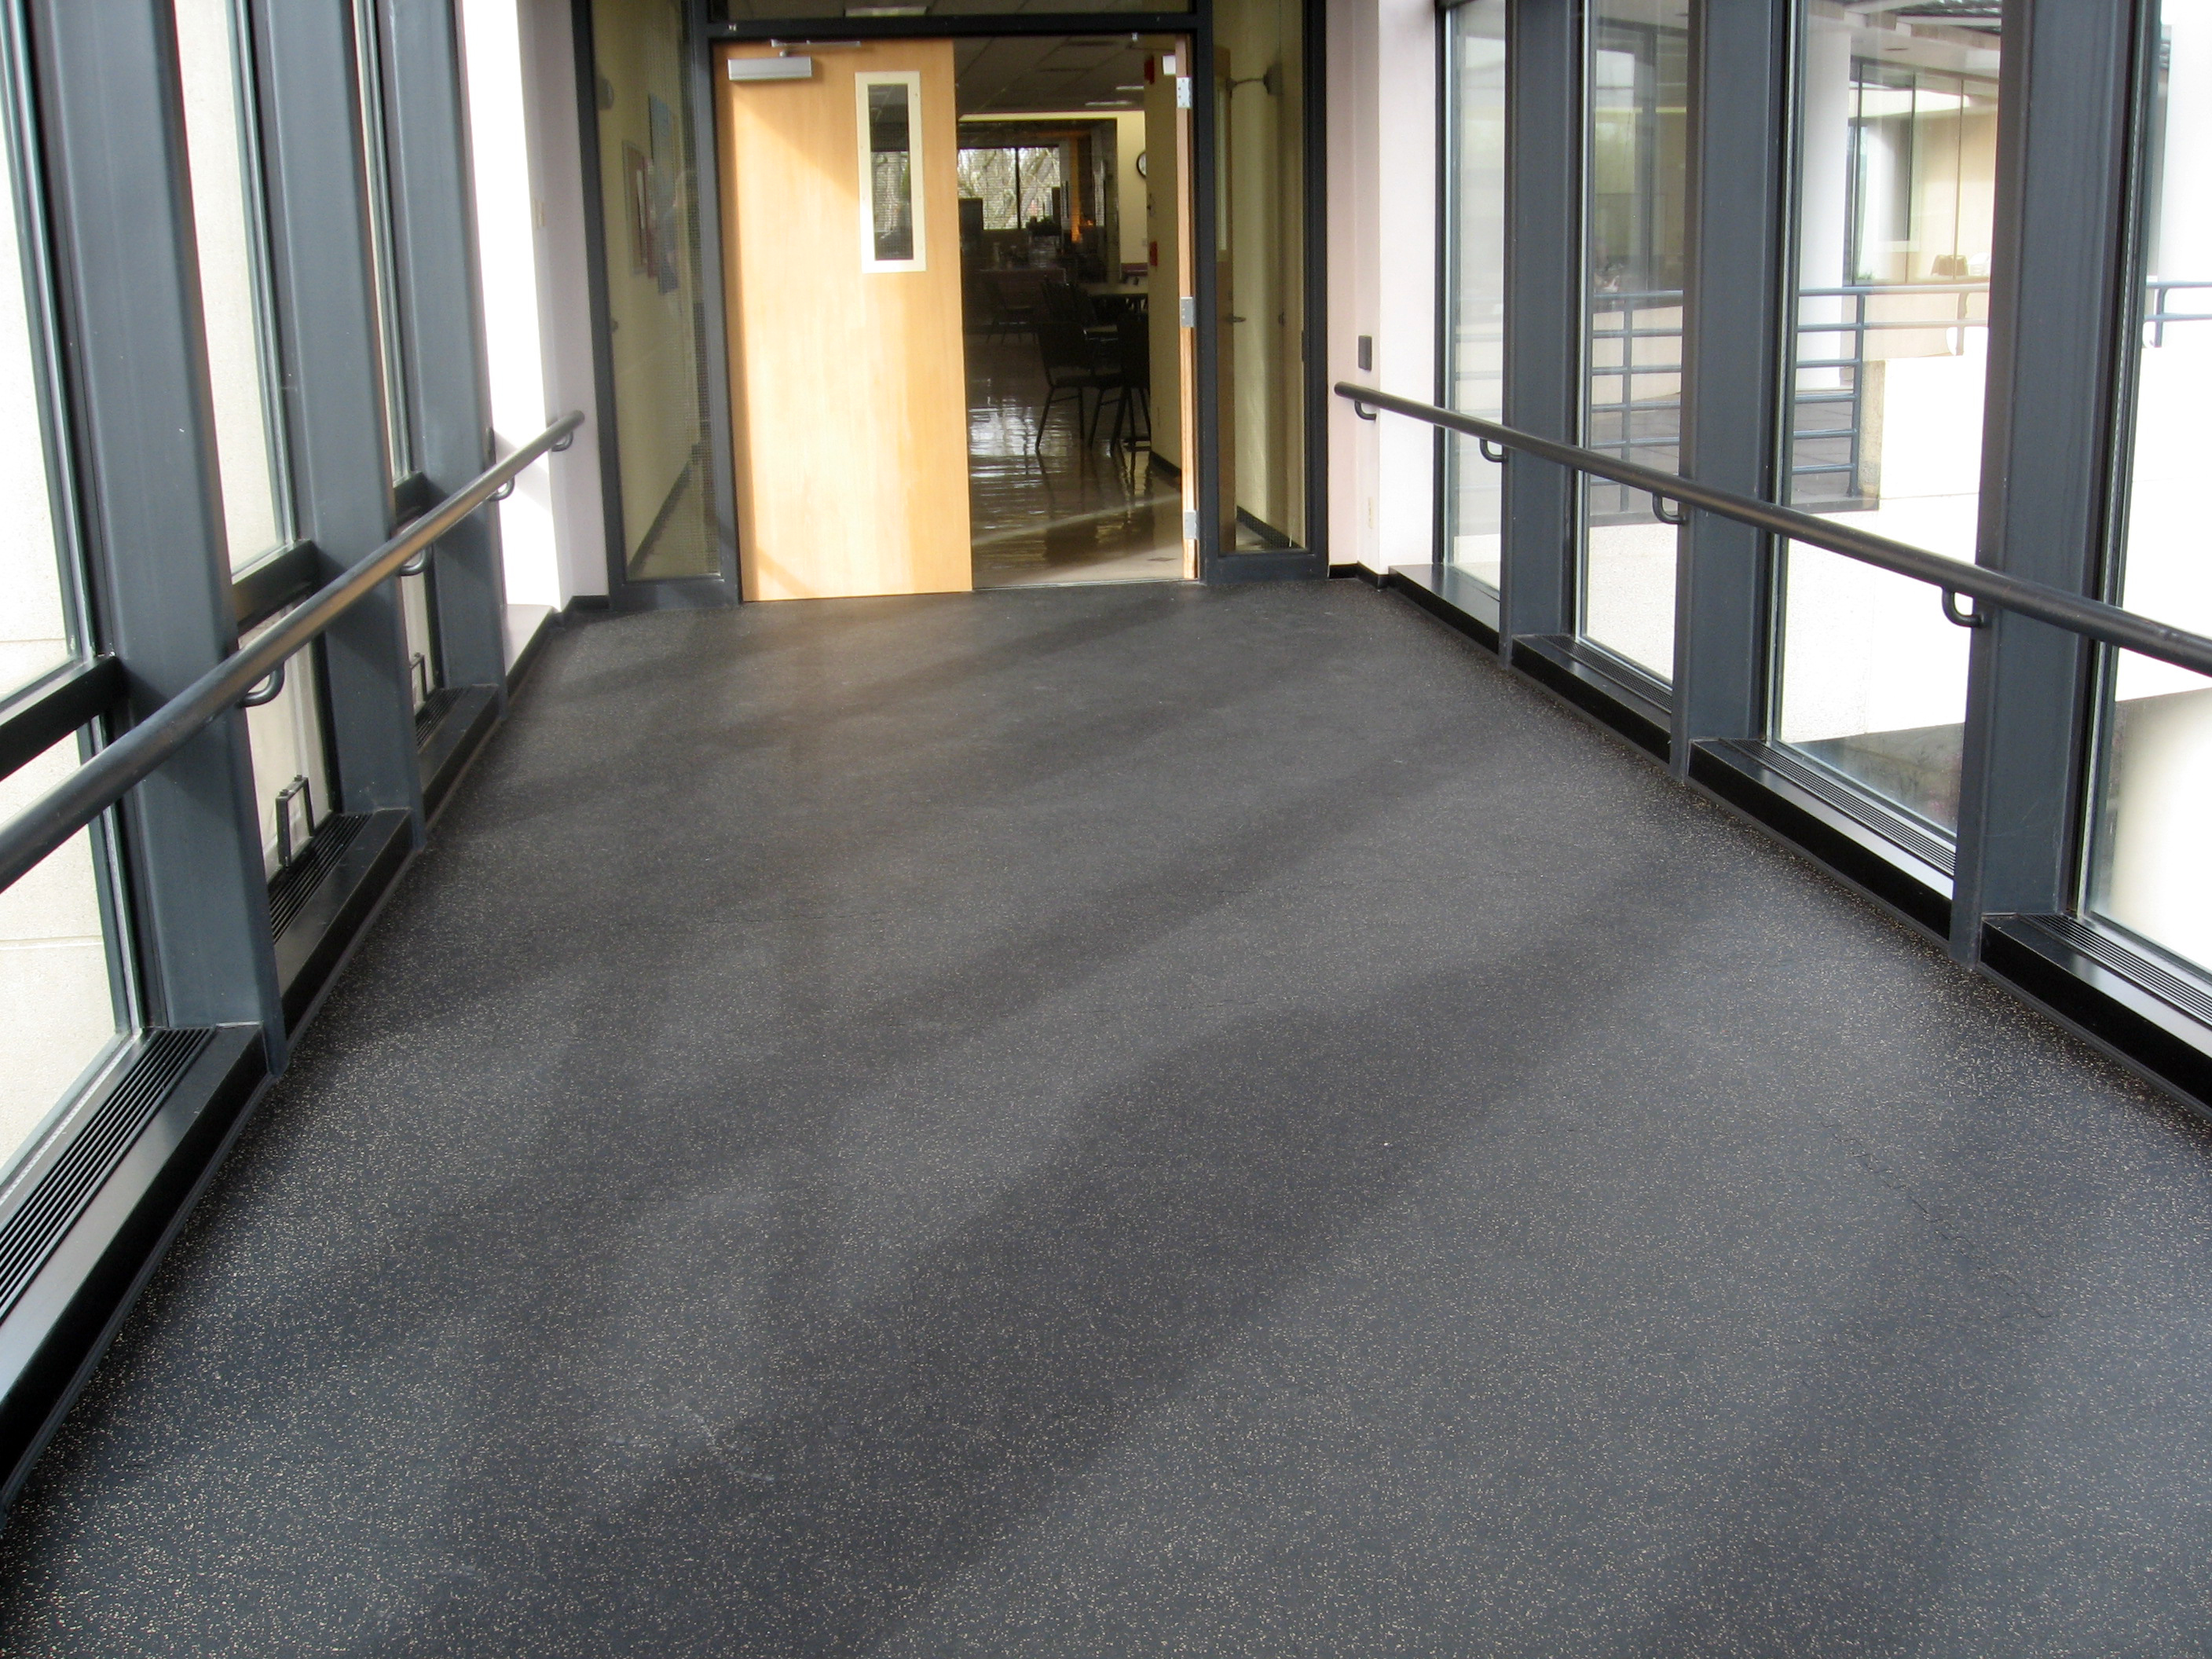 Pleasing Rolled Rubber Flooring 5X50X1 4 Black With Blue Download Free Architecture Designs Sospemadebymaigaardcom